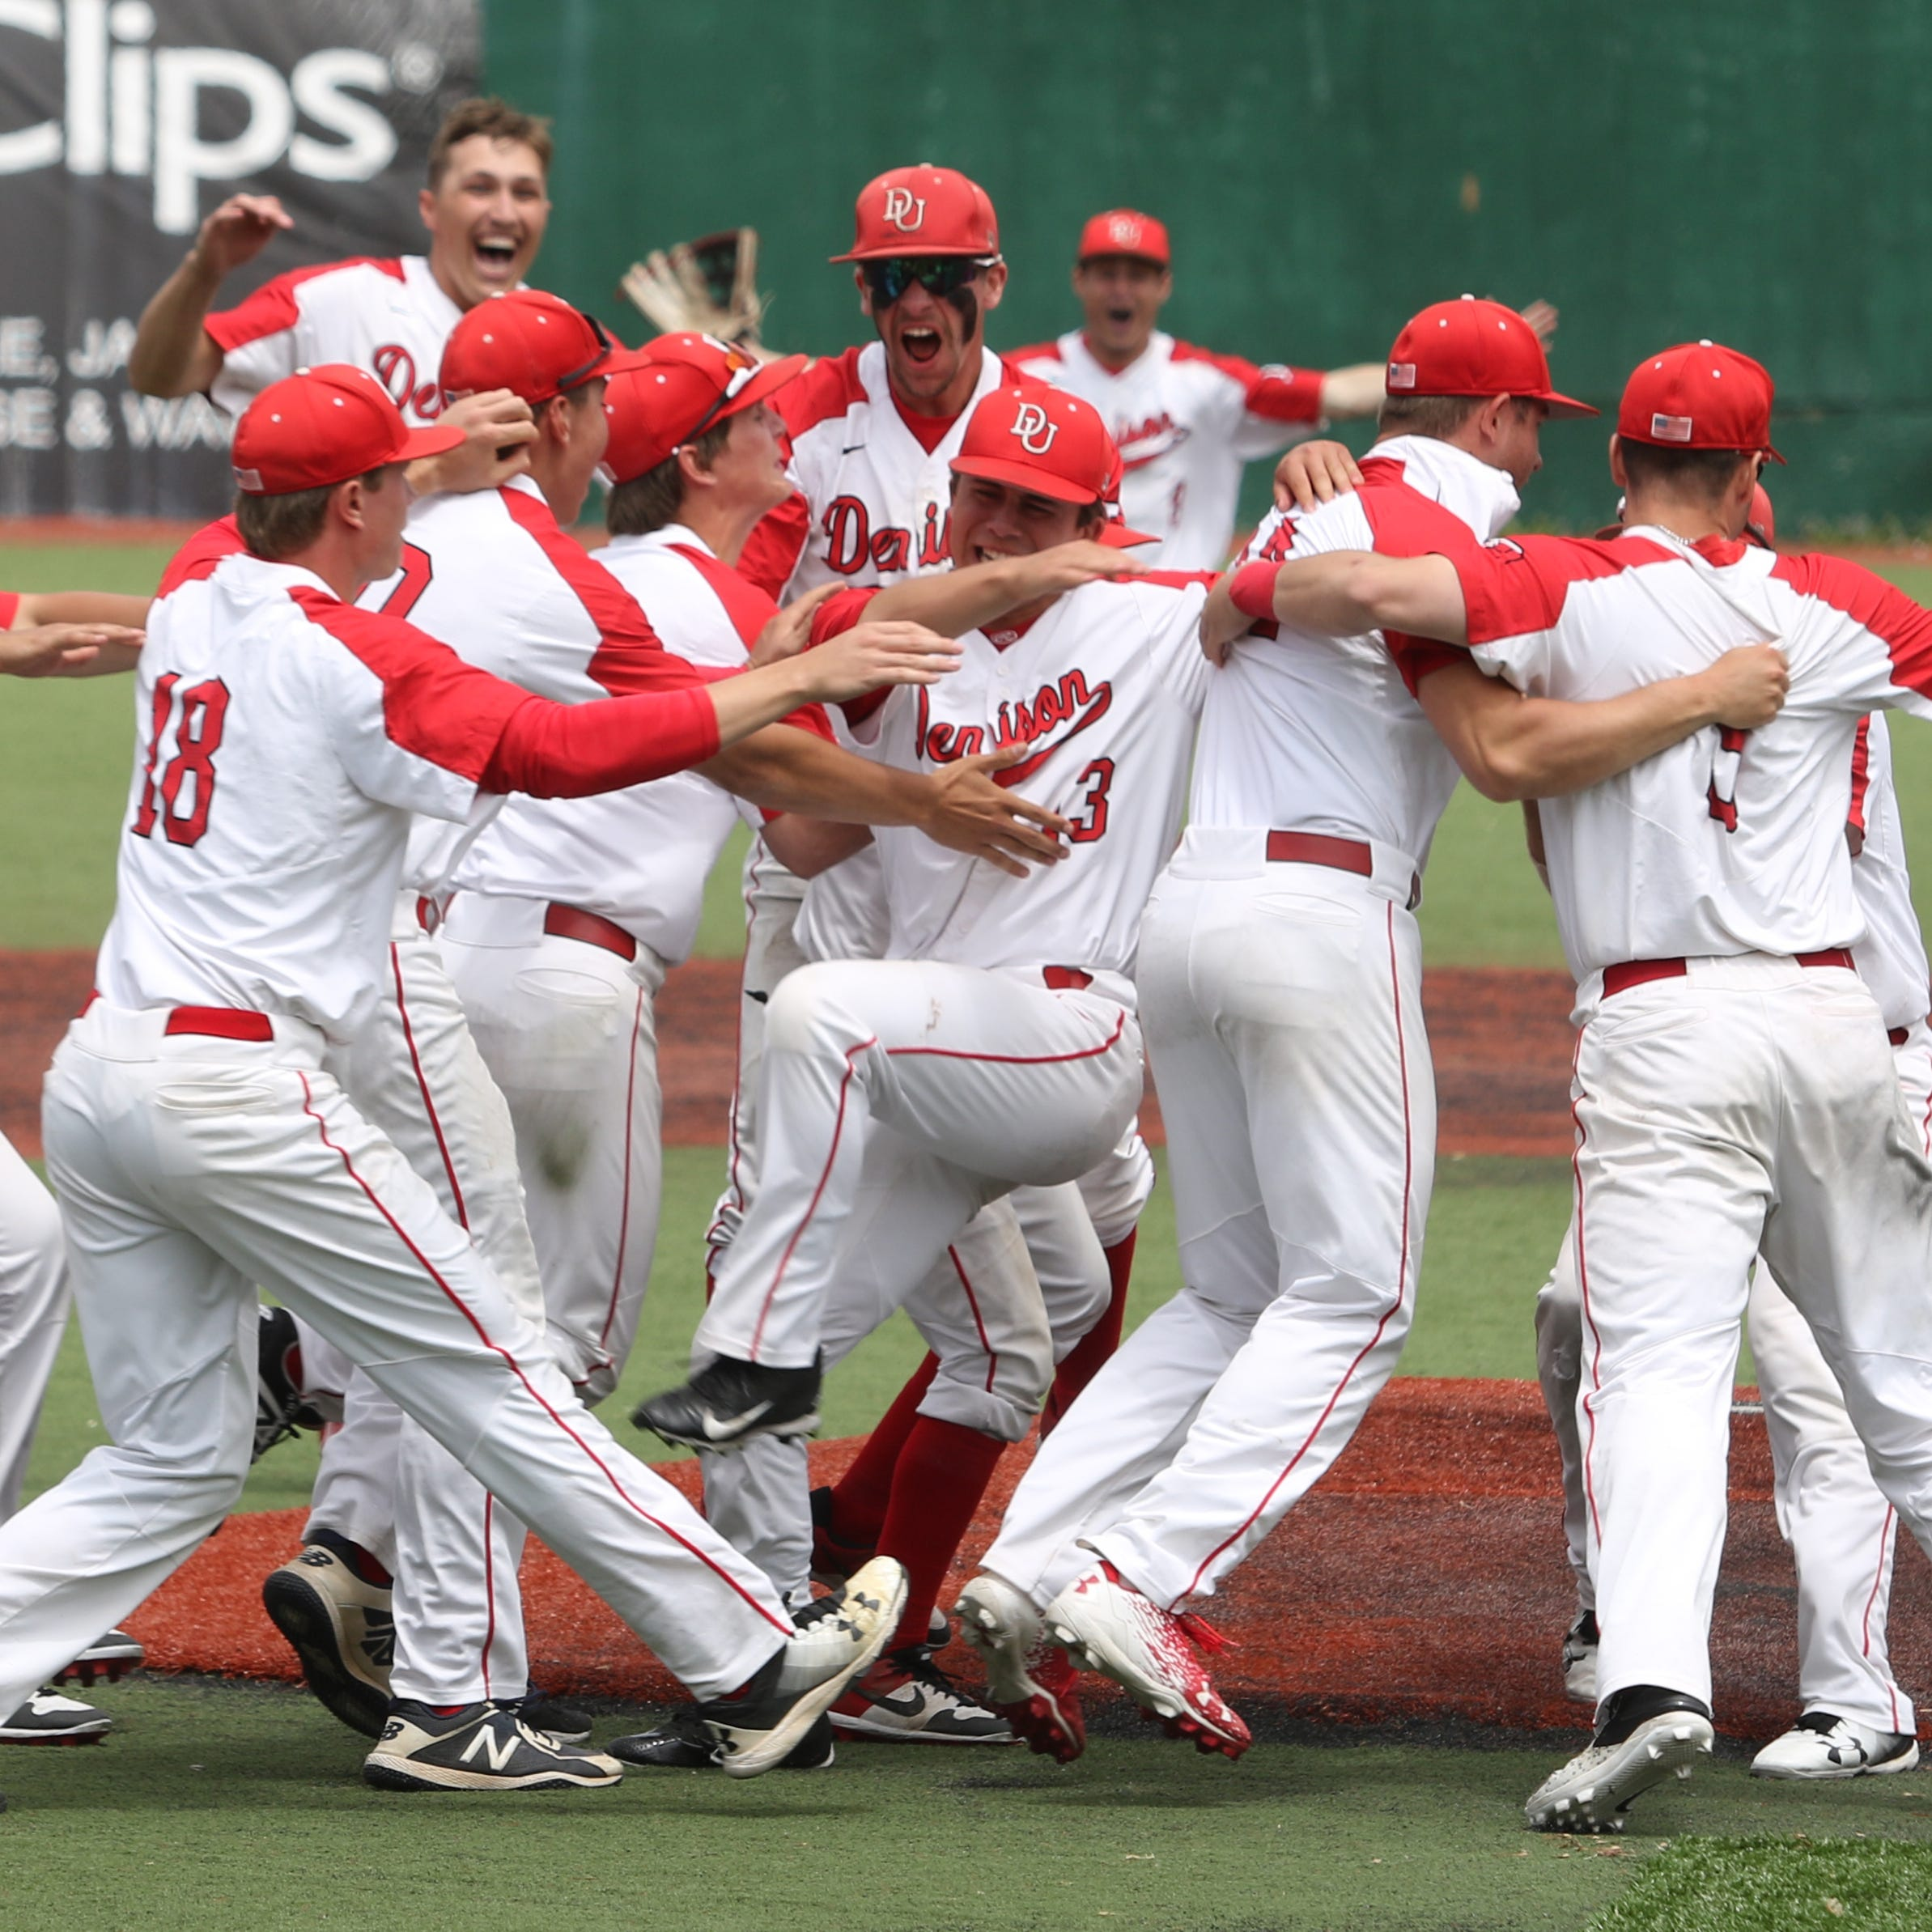 Denison baseball wins first NCAC tournament title